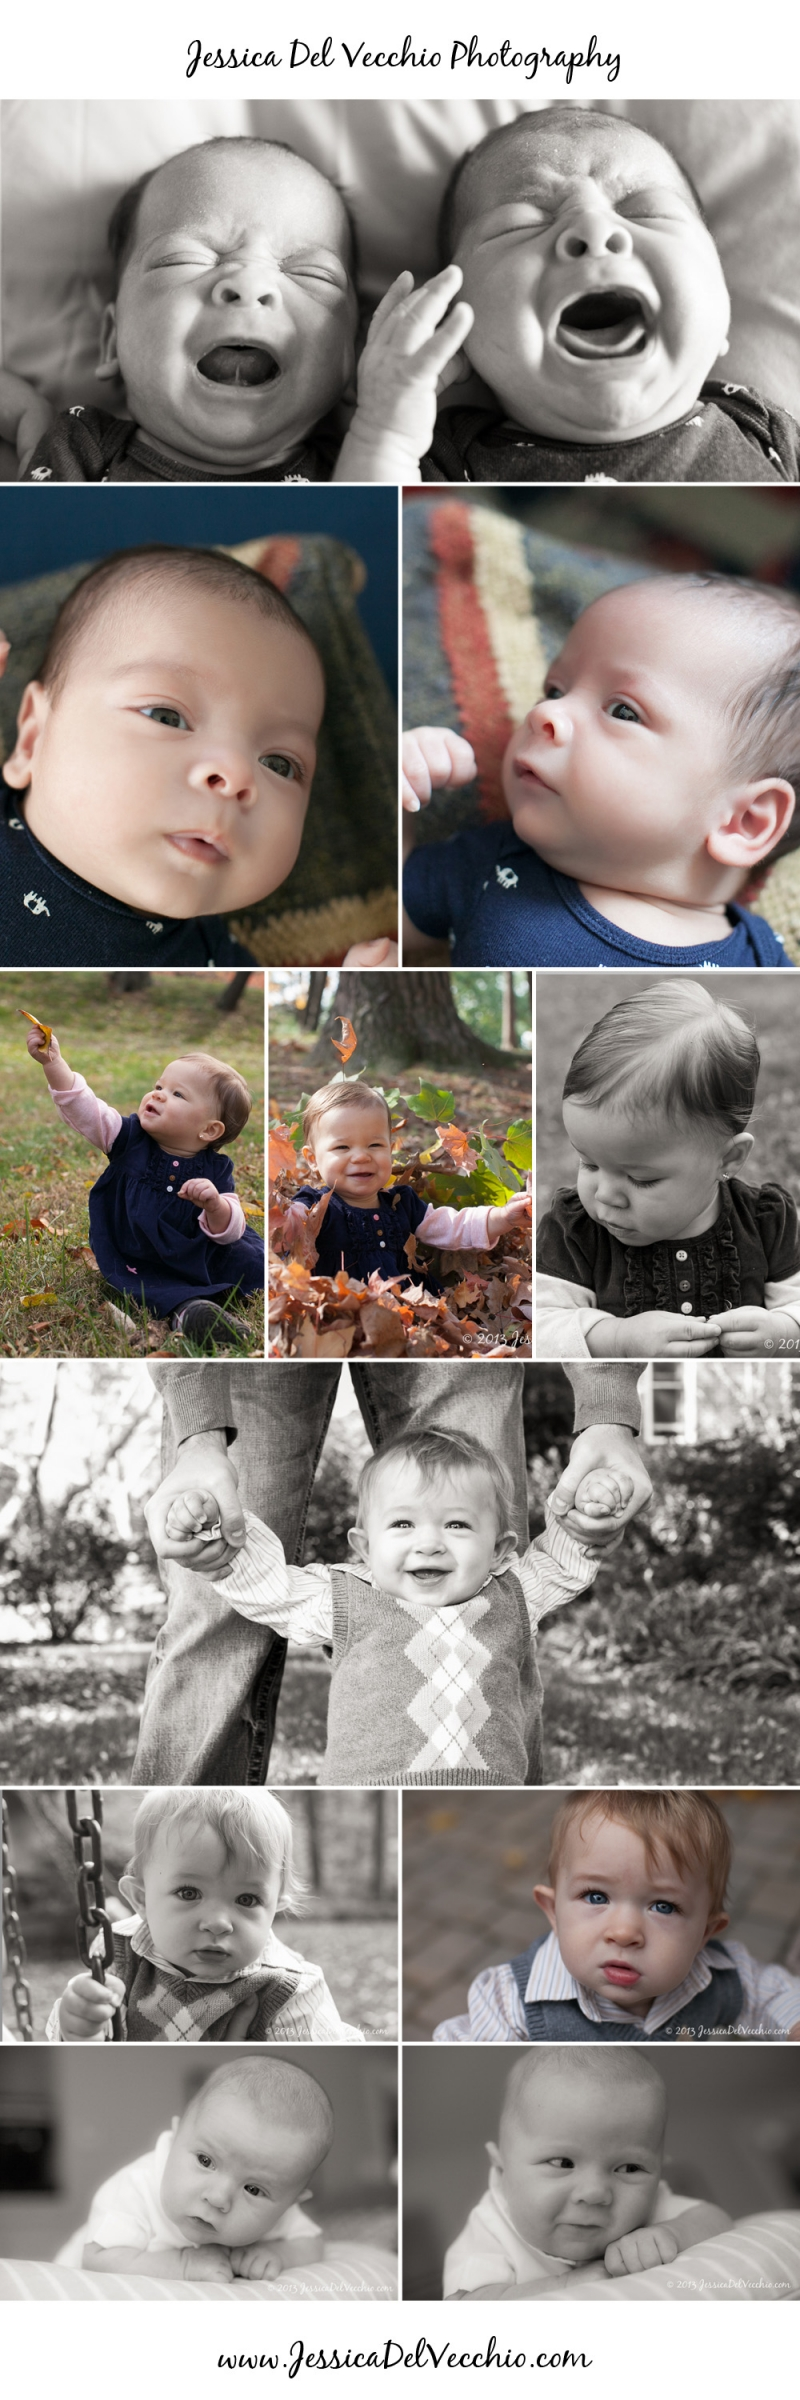 Capitol Hill Baby Portrait Photographer